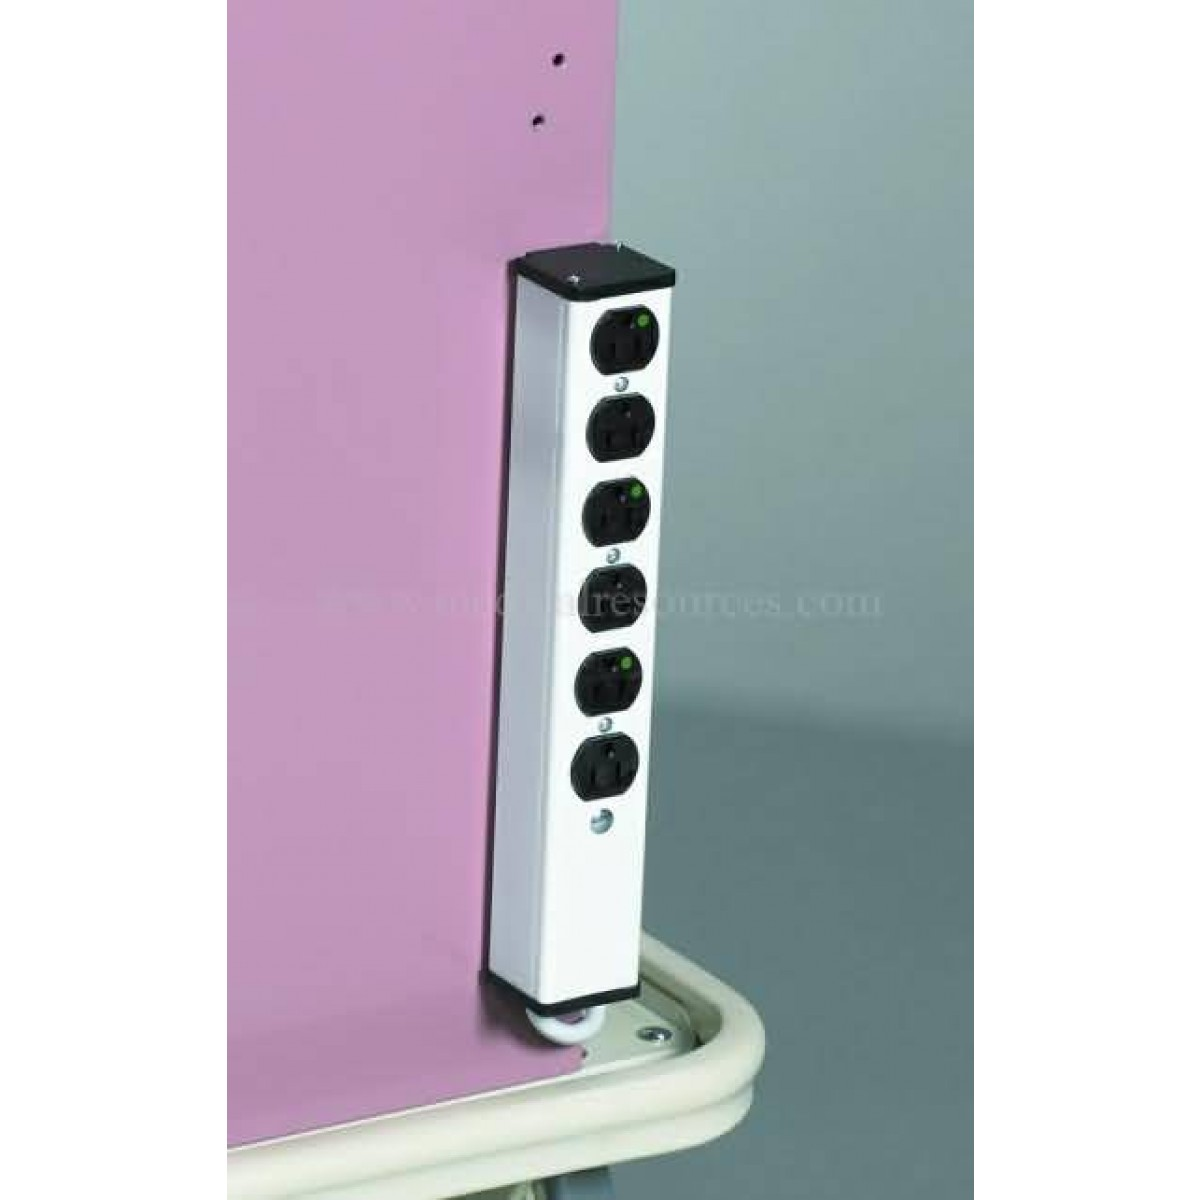 Mpd medical mobile cart outlet strip for Outlet mobile